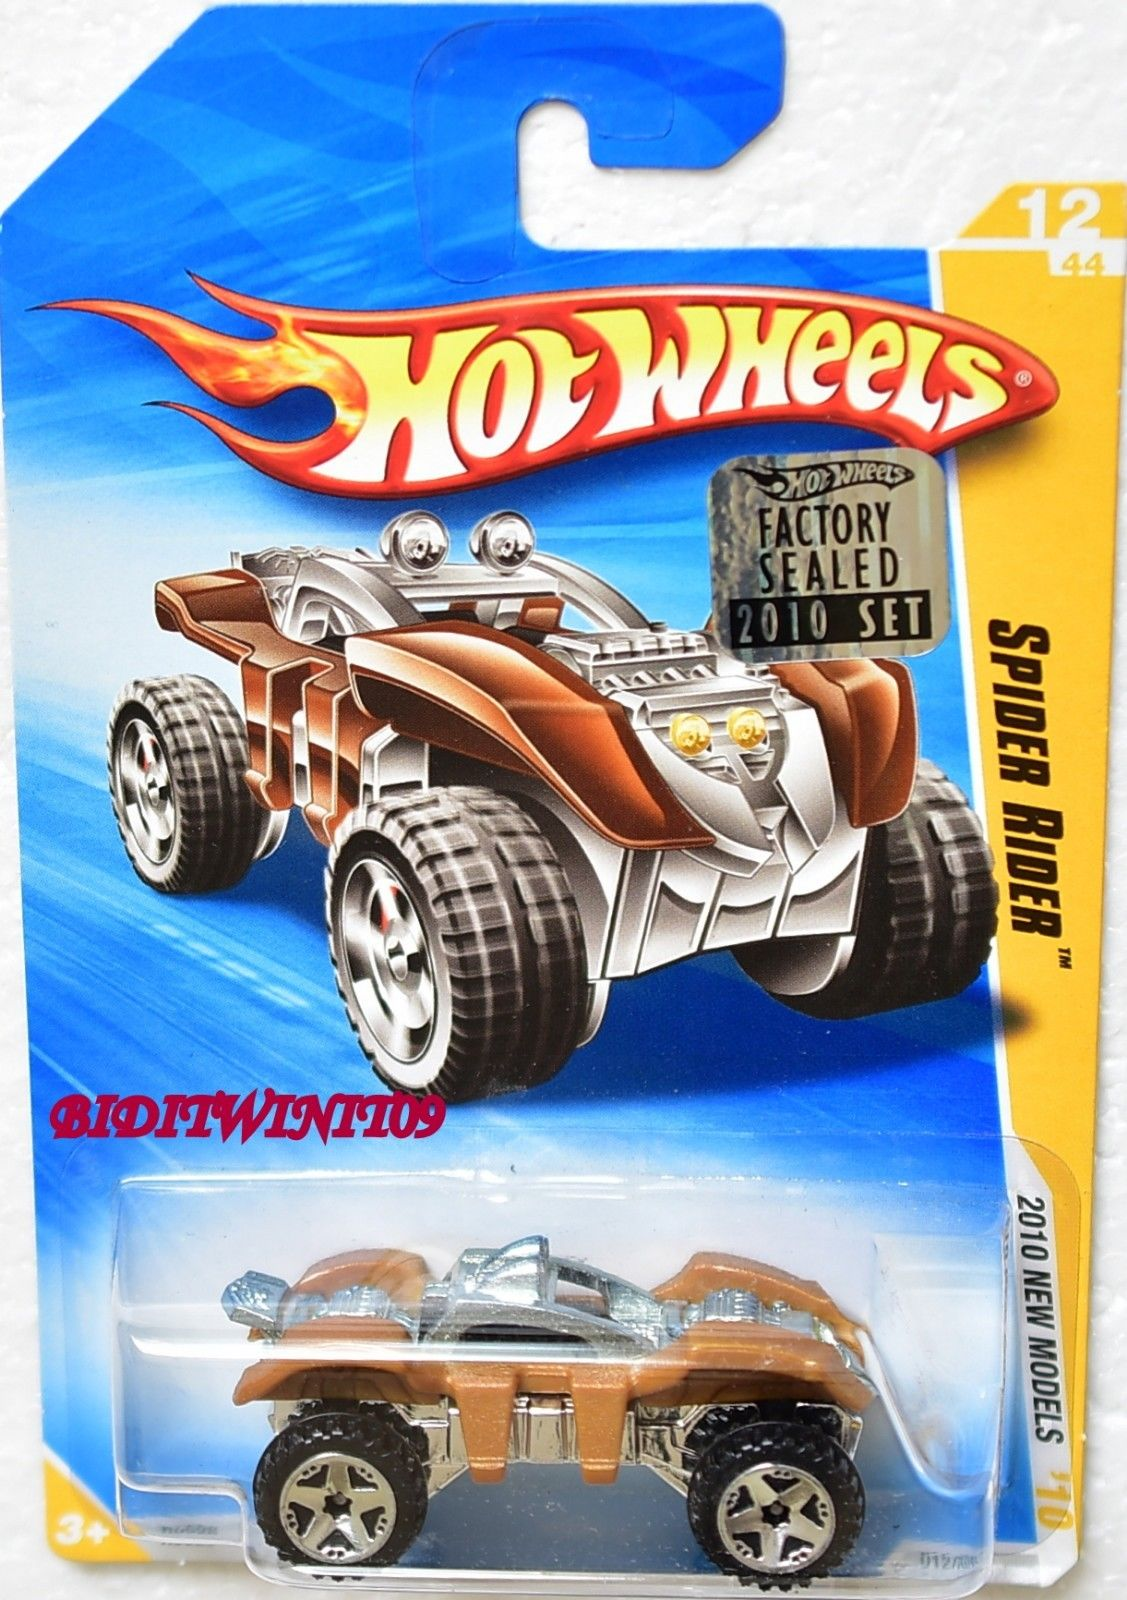 HOT WHEELS 2010 NEW MODELS SPIDER RIDER #12/44 FACTORY SEALED E+